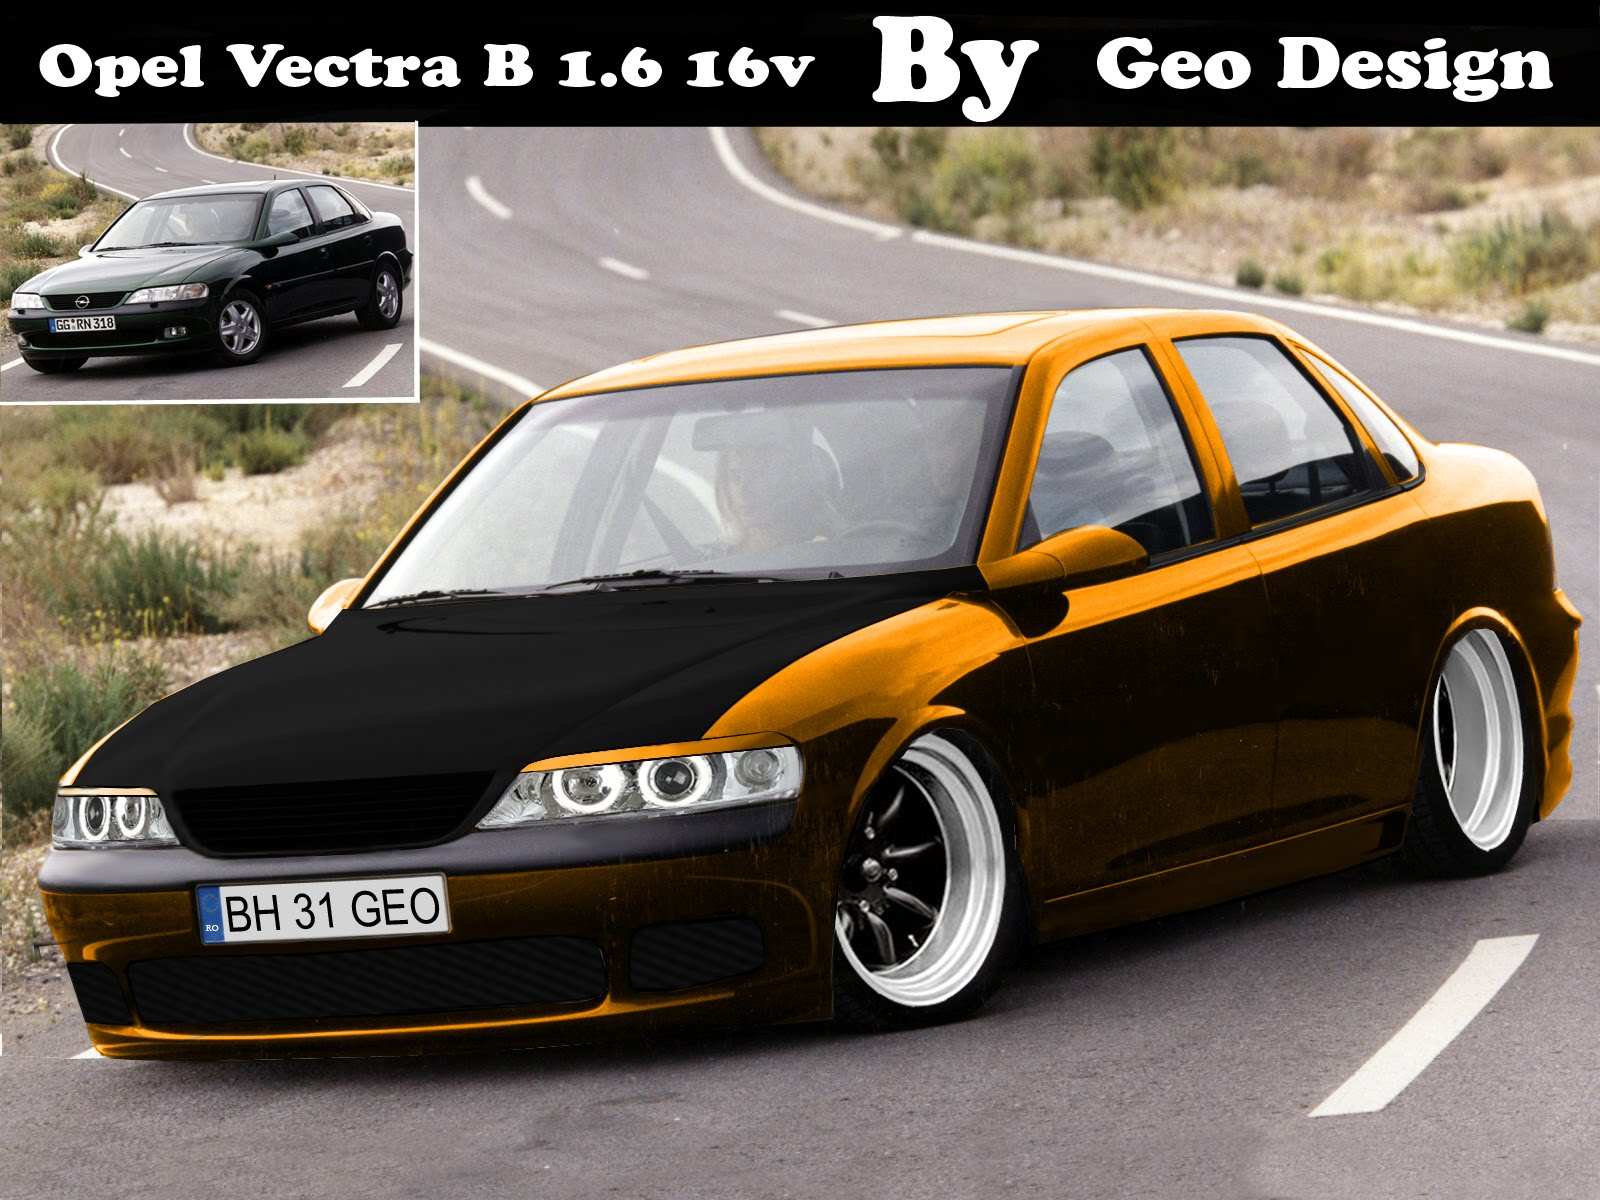 opel vectra history photos on better parts ltd. Black Bedroom Furniture Sets. Home Design Ideas